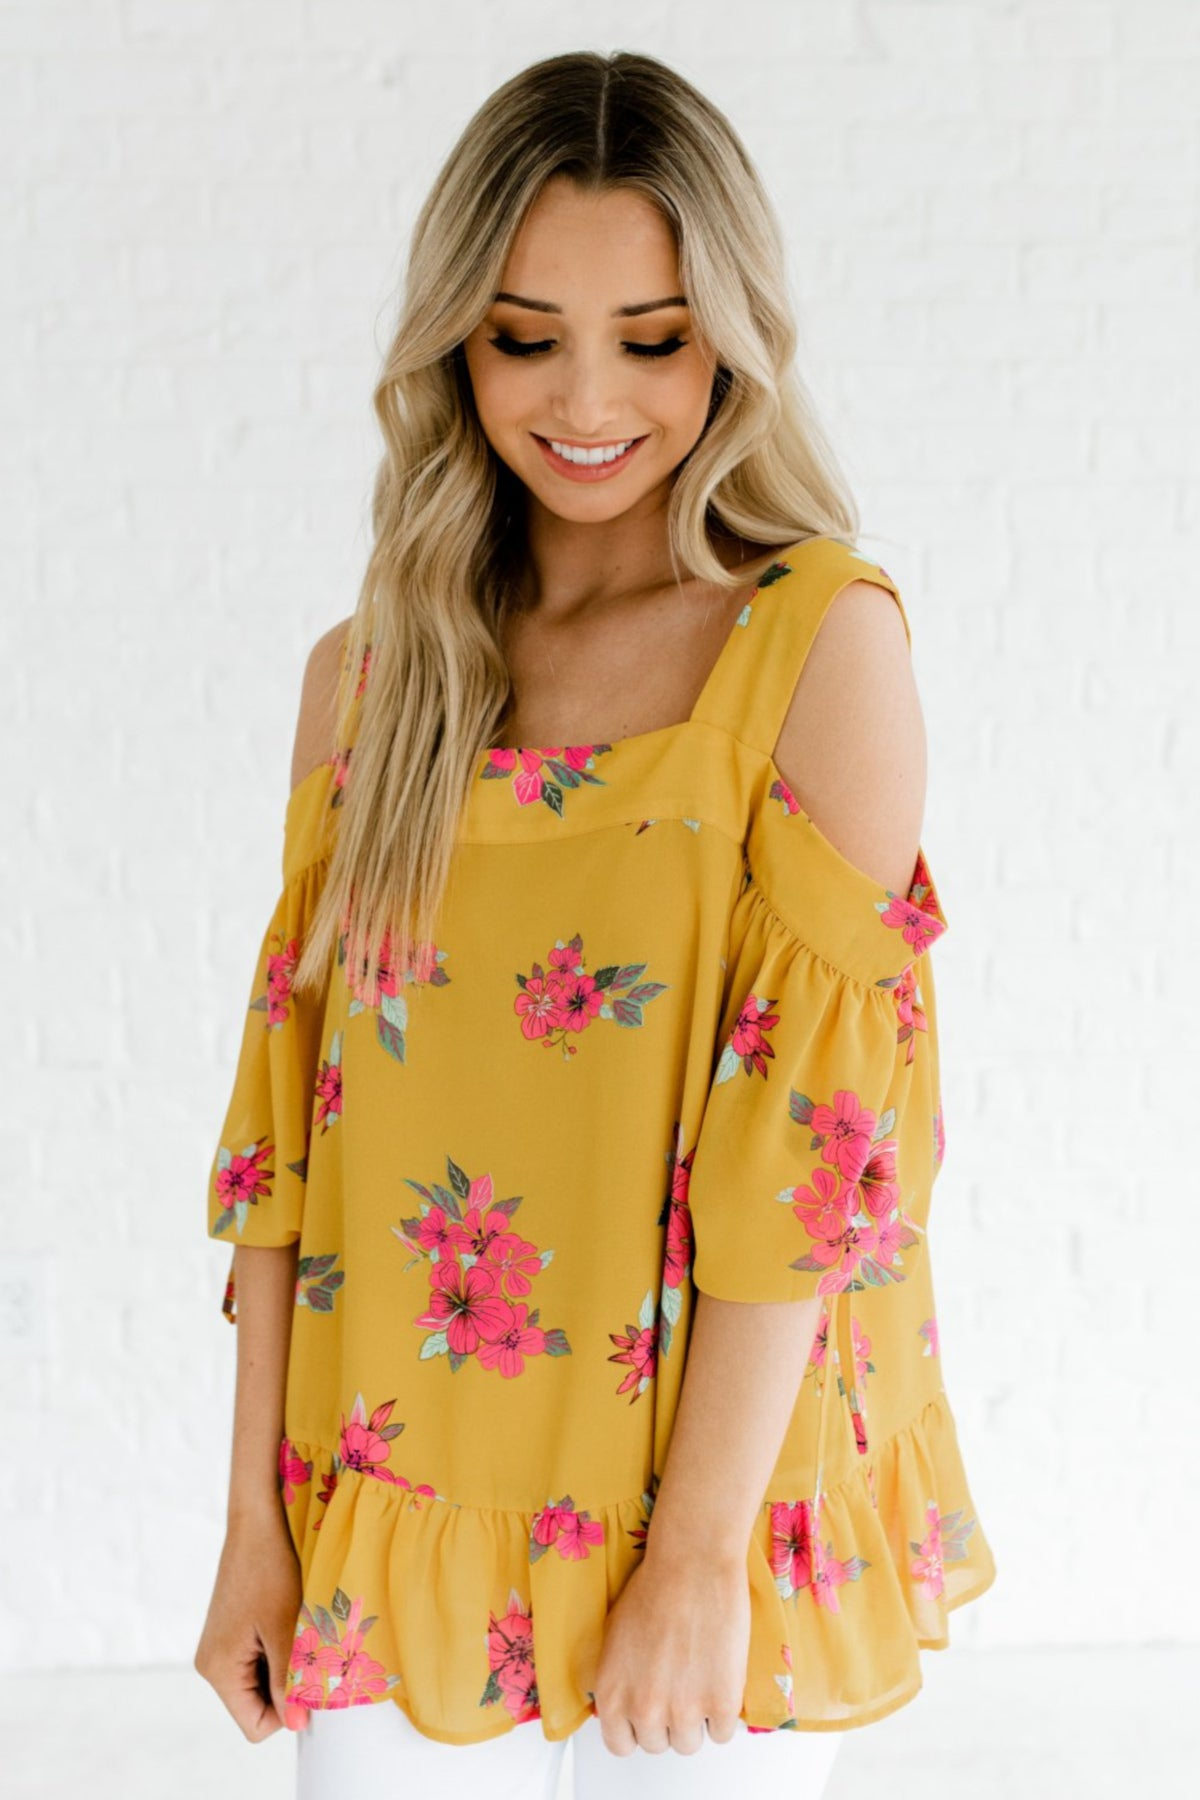 Mustard Yellow Floral Women's Puff Tie Cute Sleeve Boutique Top